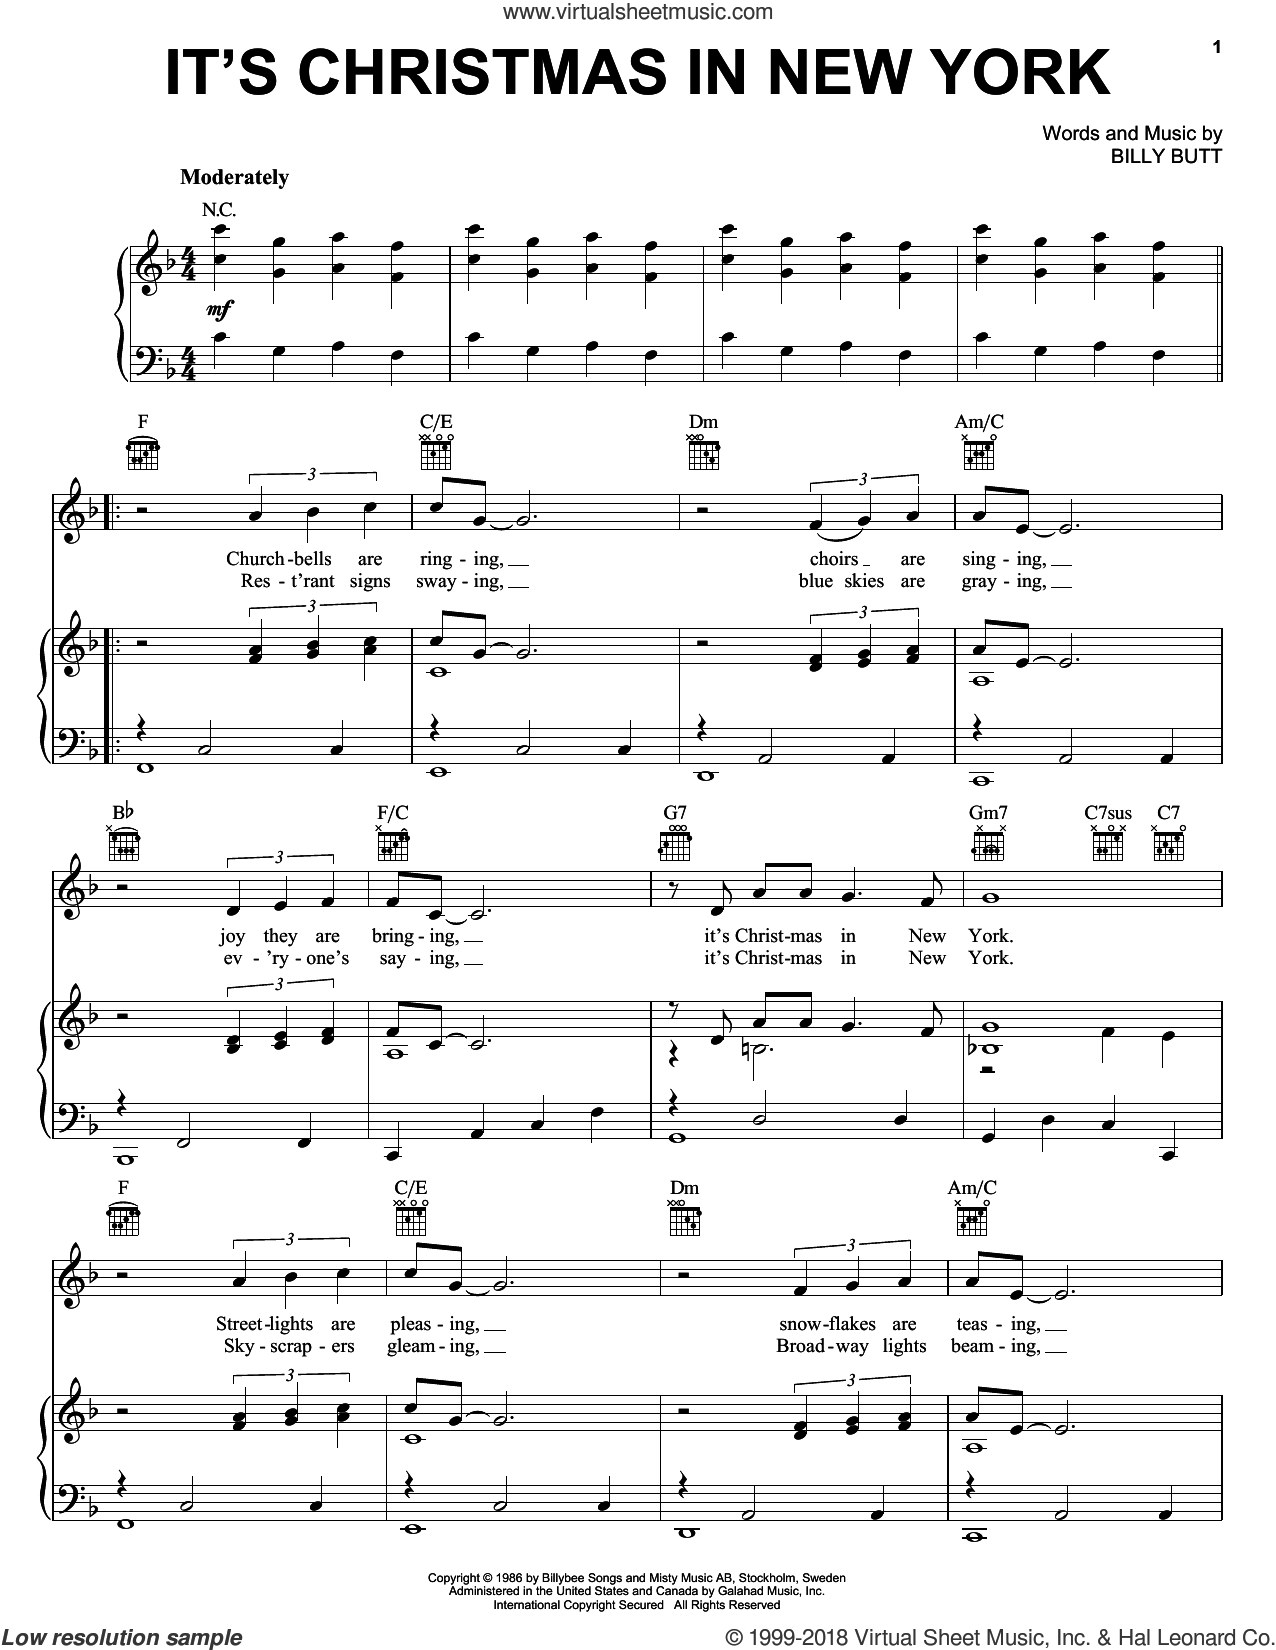 It's Christmas In New York sheet music for voice, piano or guitar by John Wesley Shipp and Billy Butt, intermediate skill level